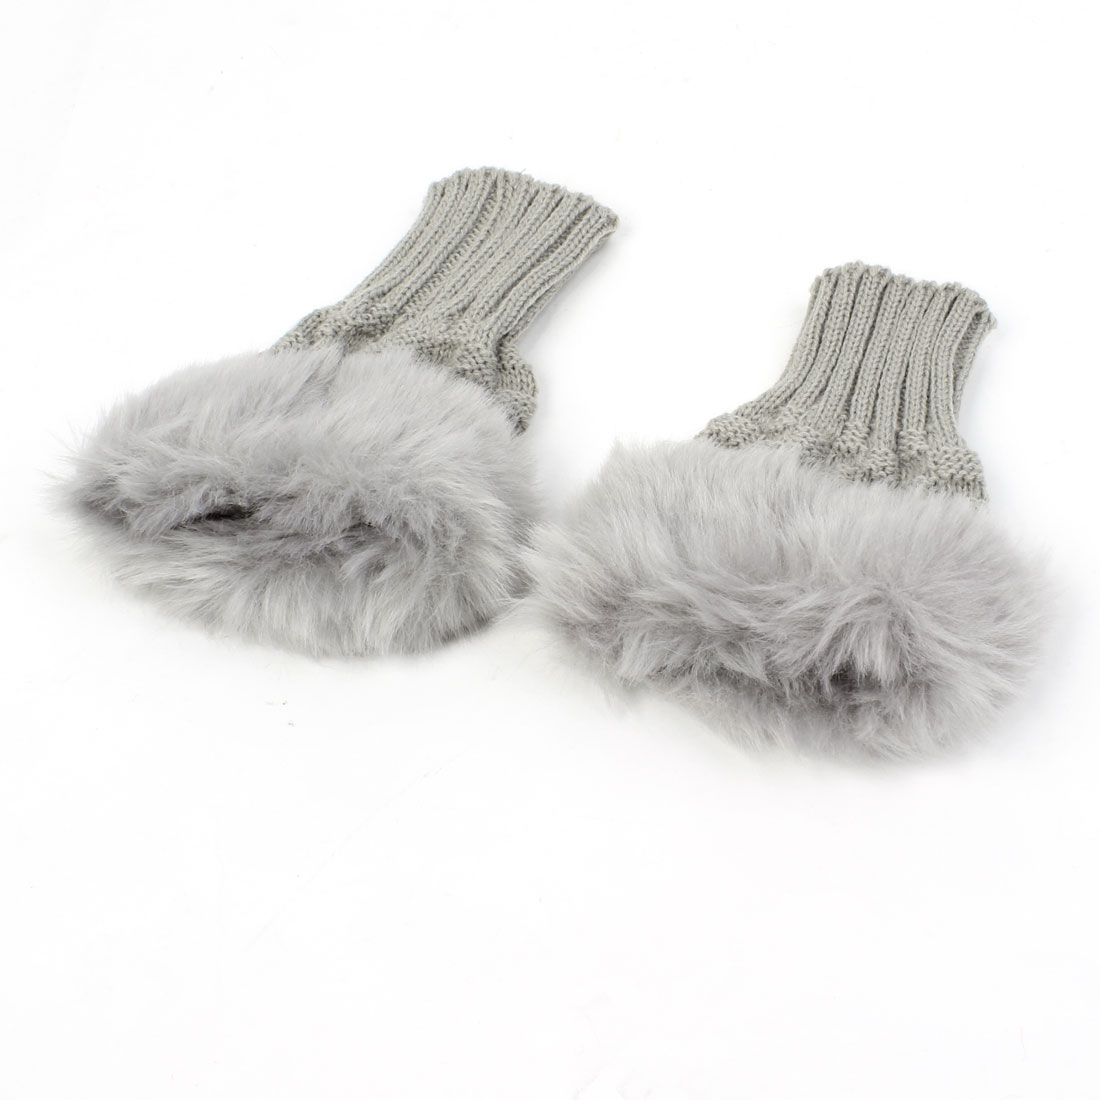 Unisex Winter Fax Fur Decor Palm Warm Knitted Fingerless Gloves Gray Pair